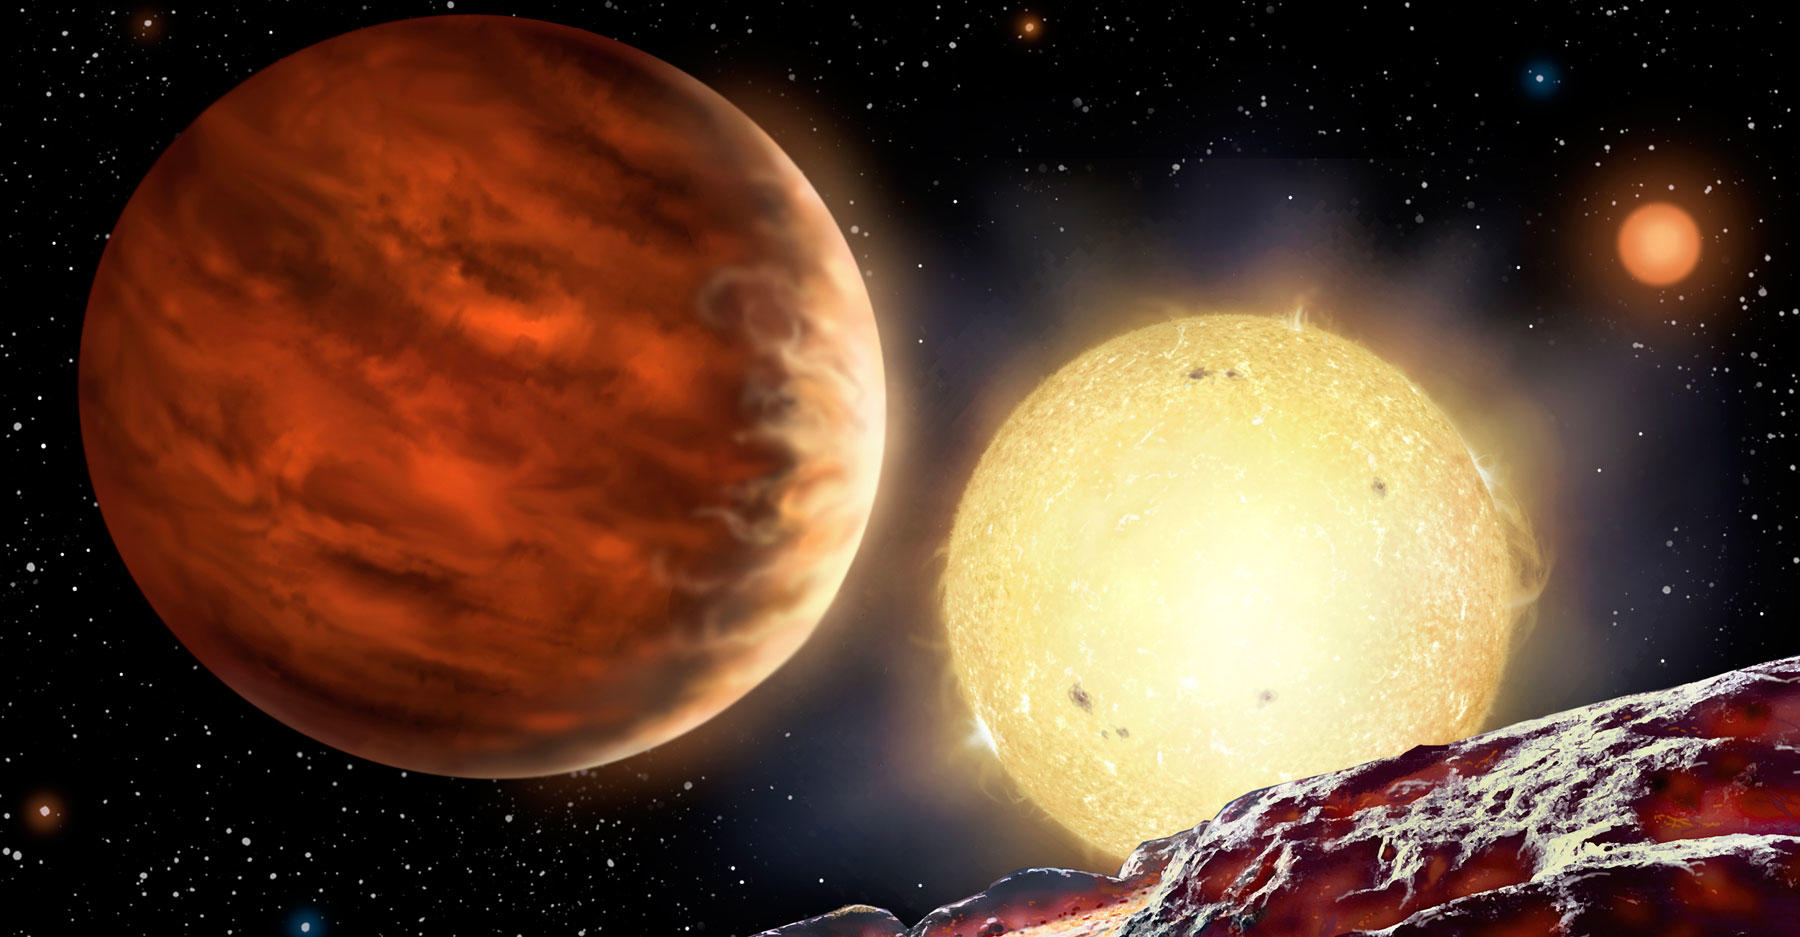 New planet WASP-142b